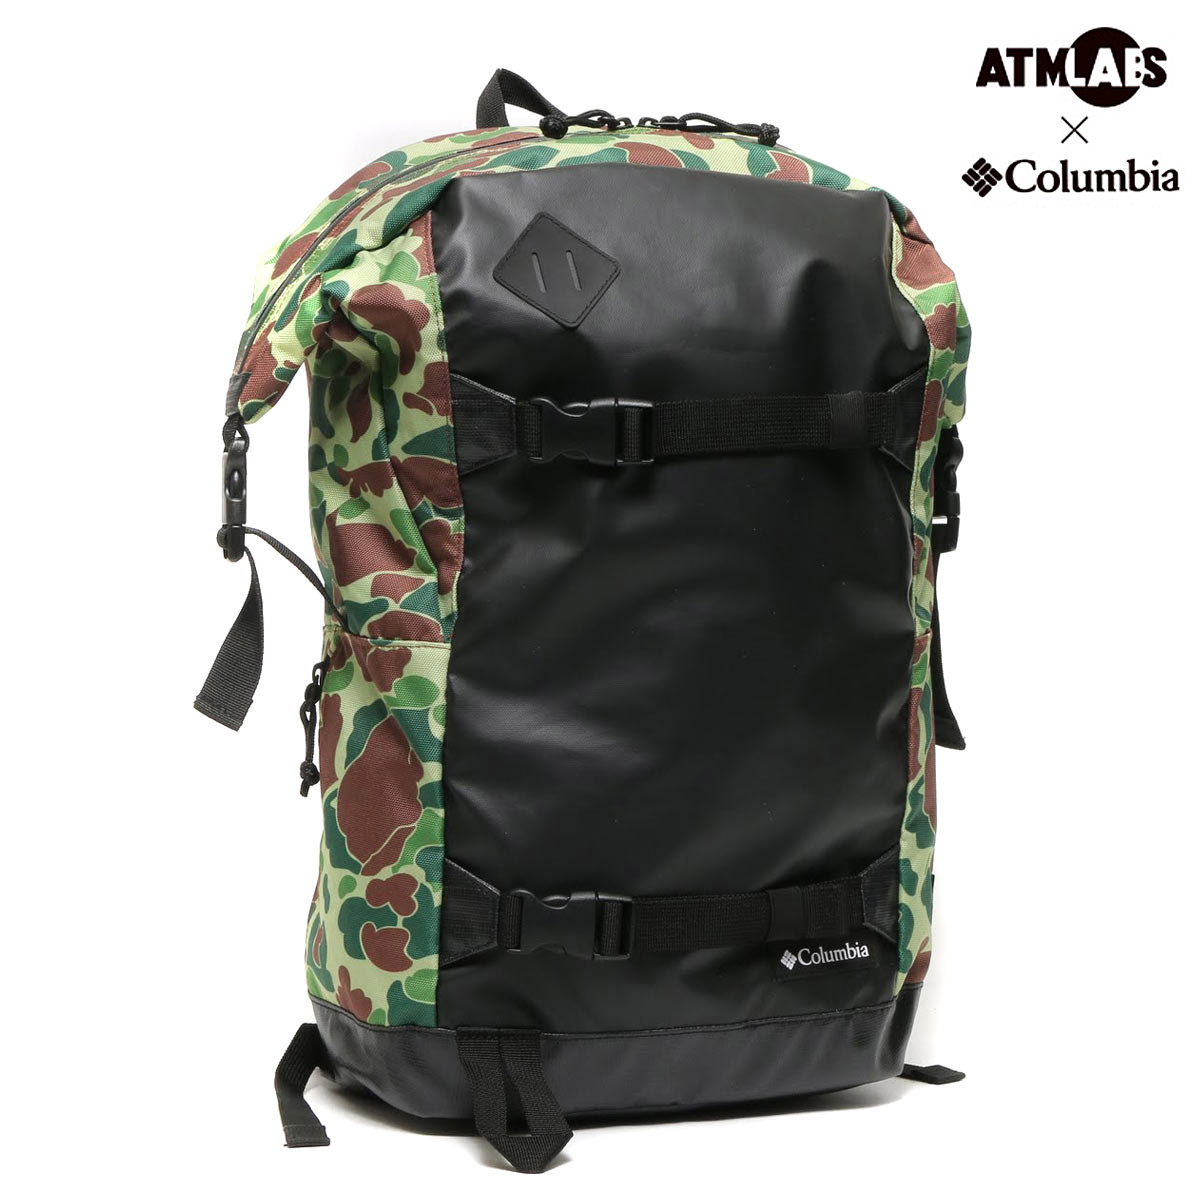 Columbia ATMOS LAB Third Bluff(TM) Special Backpack (コロンビア アトモスラボ サードブラフ(TM) スペシャル バックパック )ELM CAMO【バックパック】17SS-S